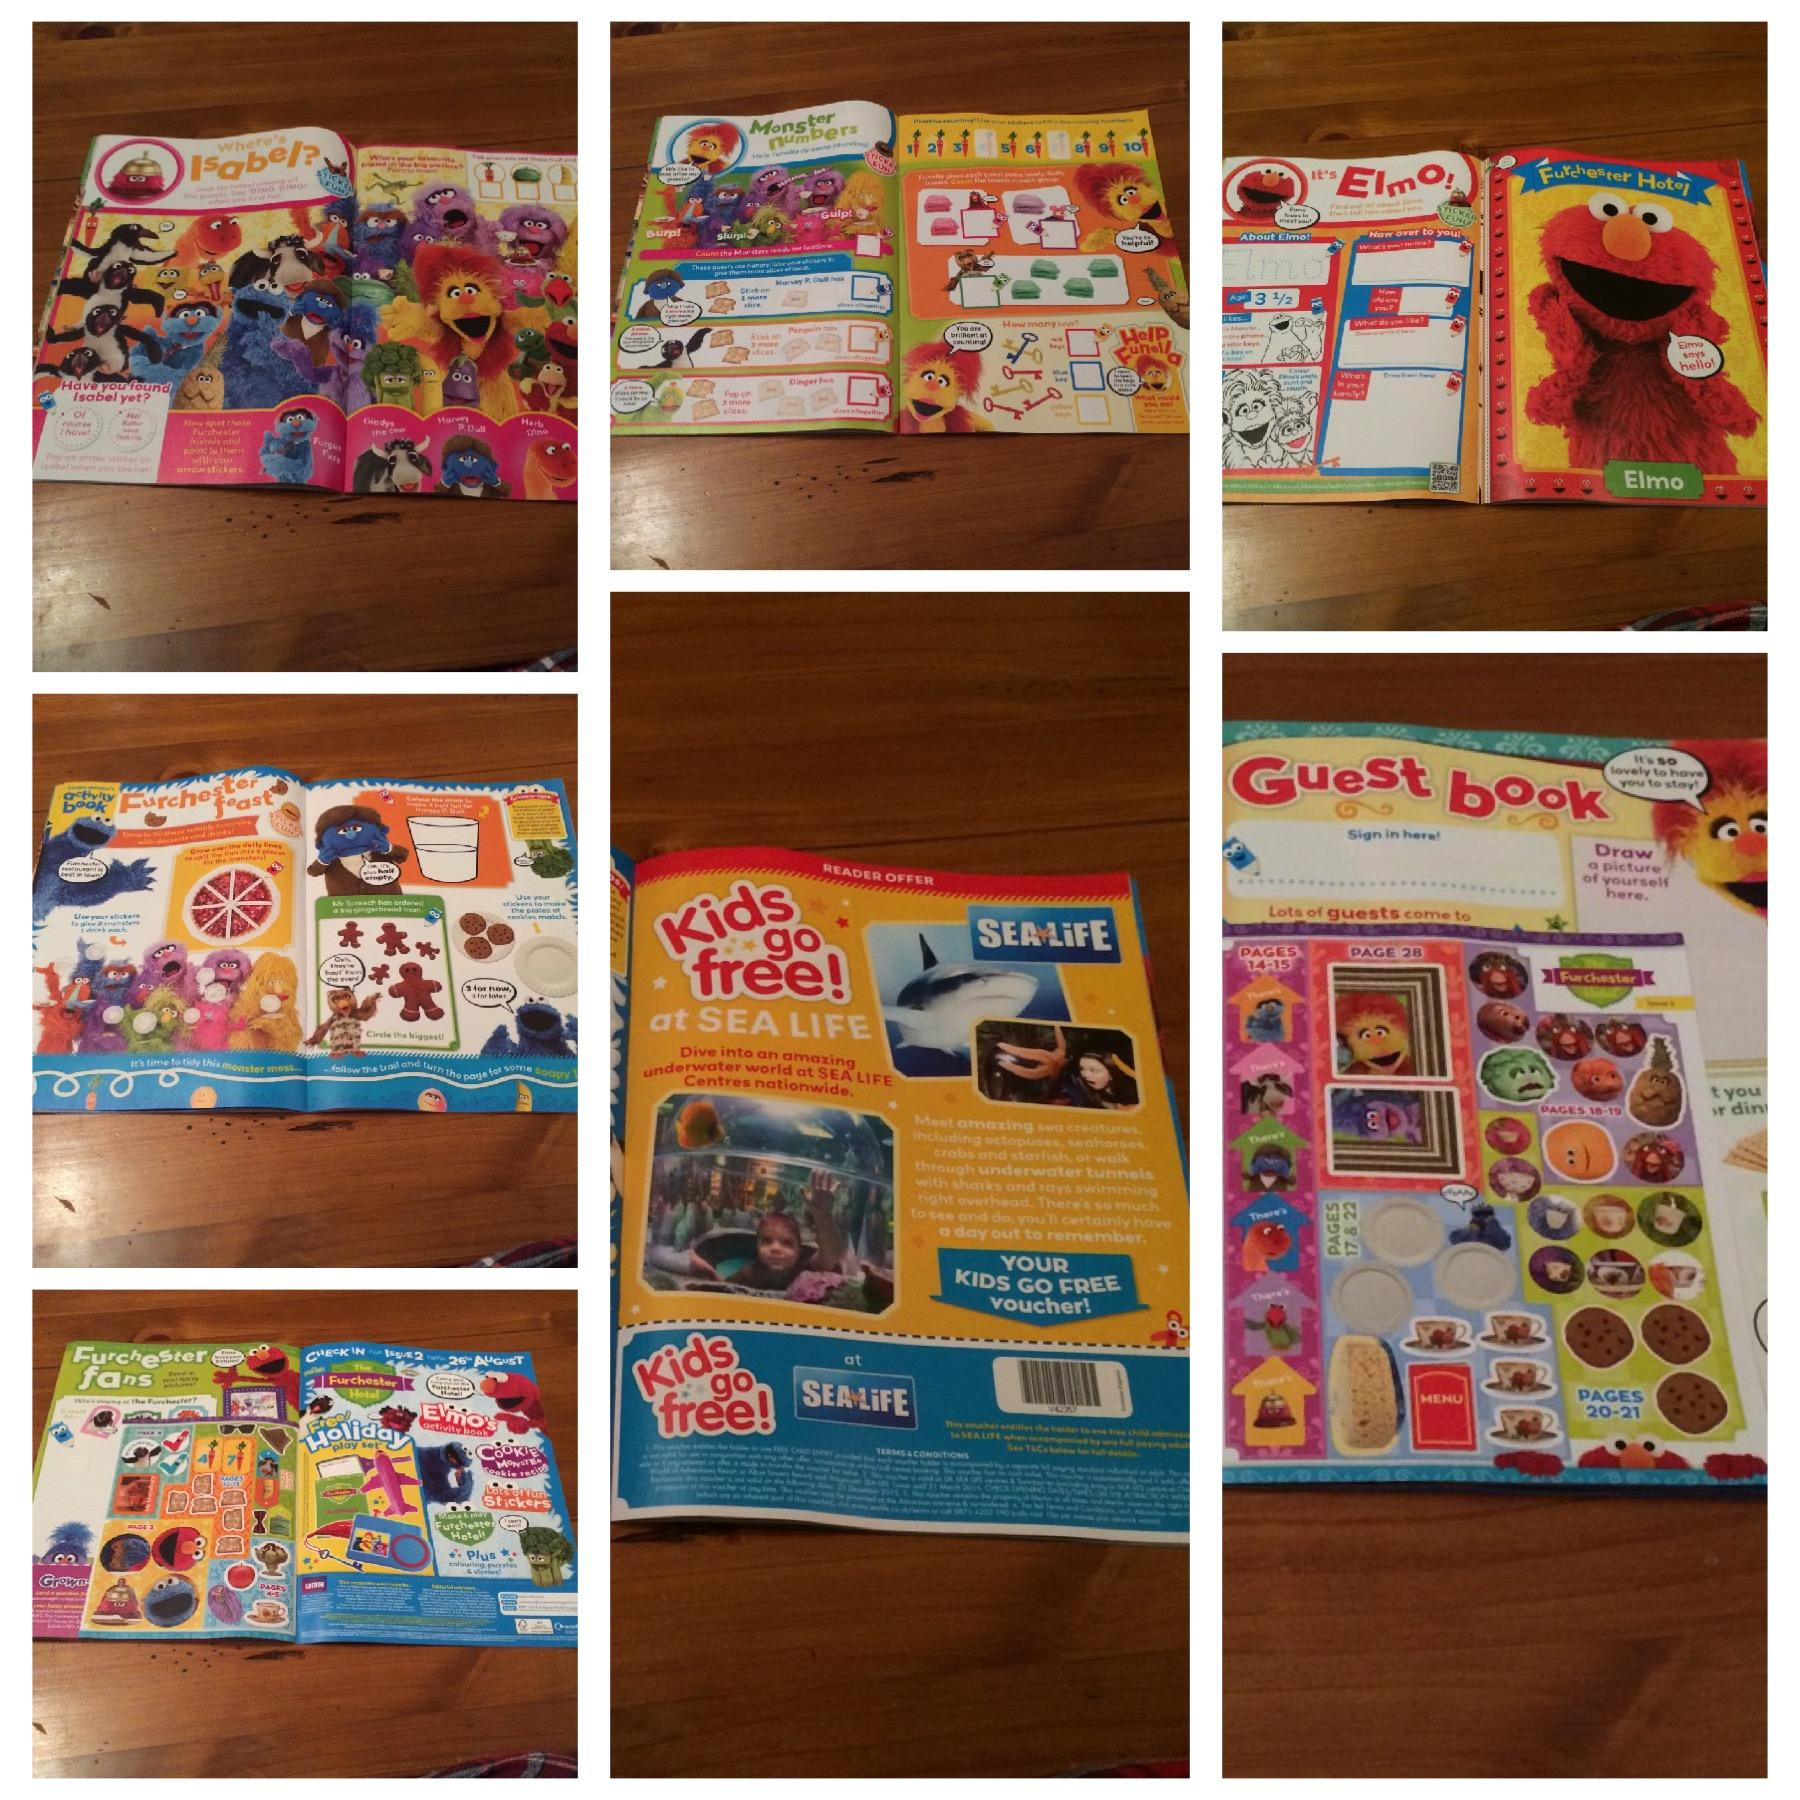 Inside issue 1 of The Furchester Hotel Magazine Review